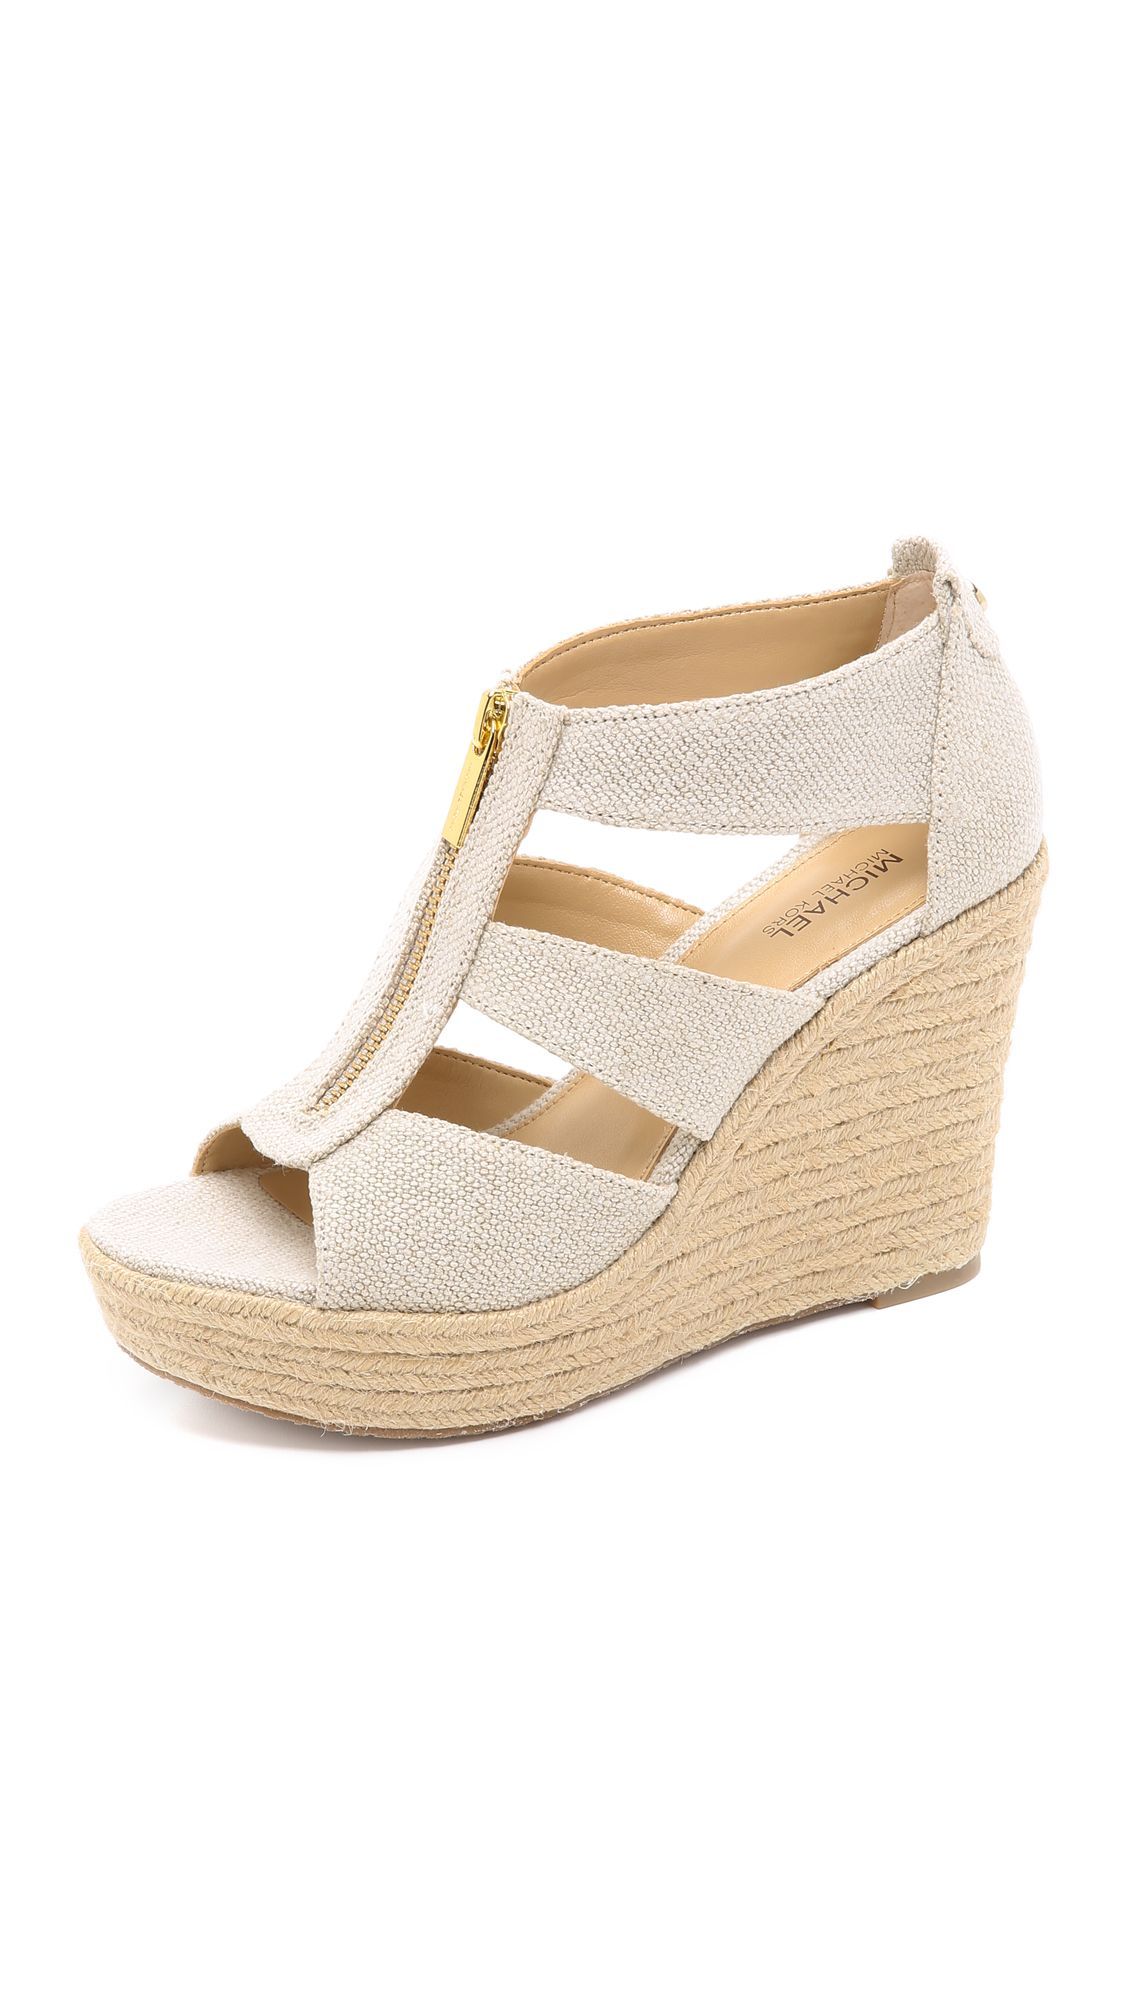 26971f3071b4 Michael Michael Kors Damita Wedge Sandals - Natural